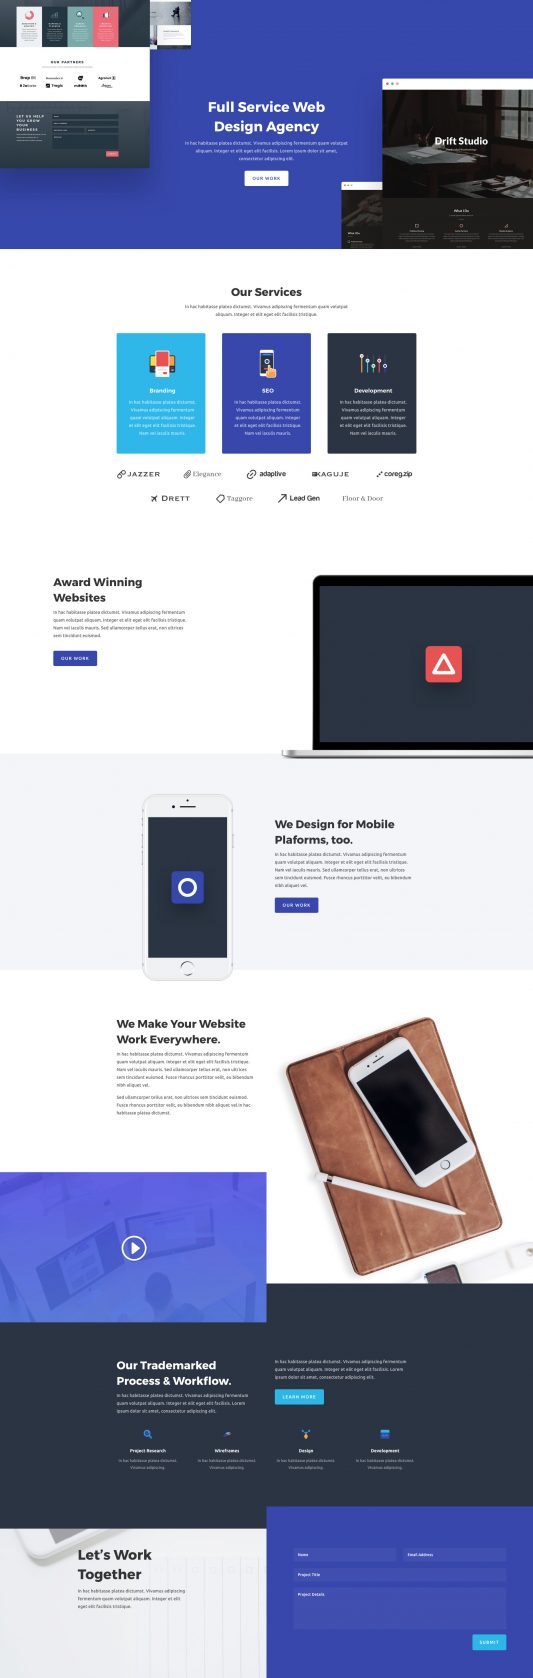 Web Agency Web Design 4